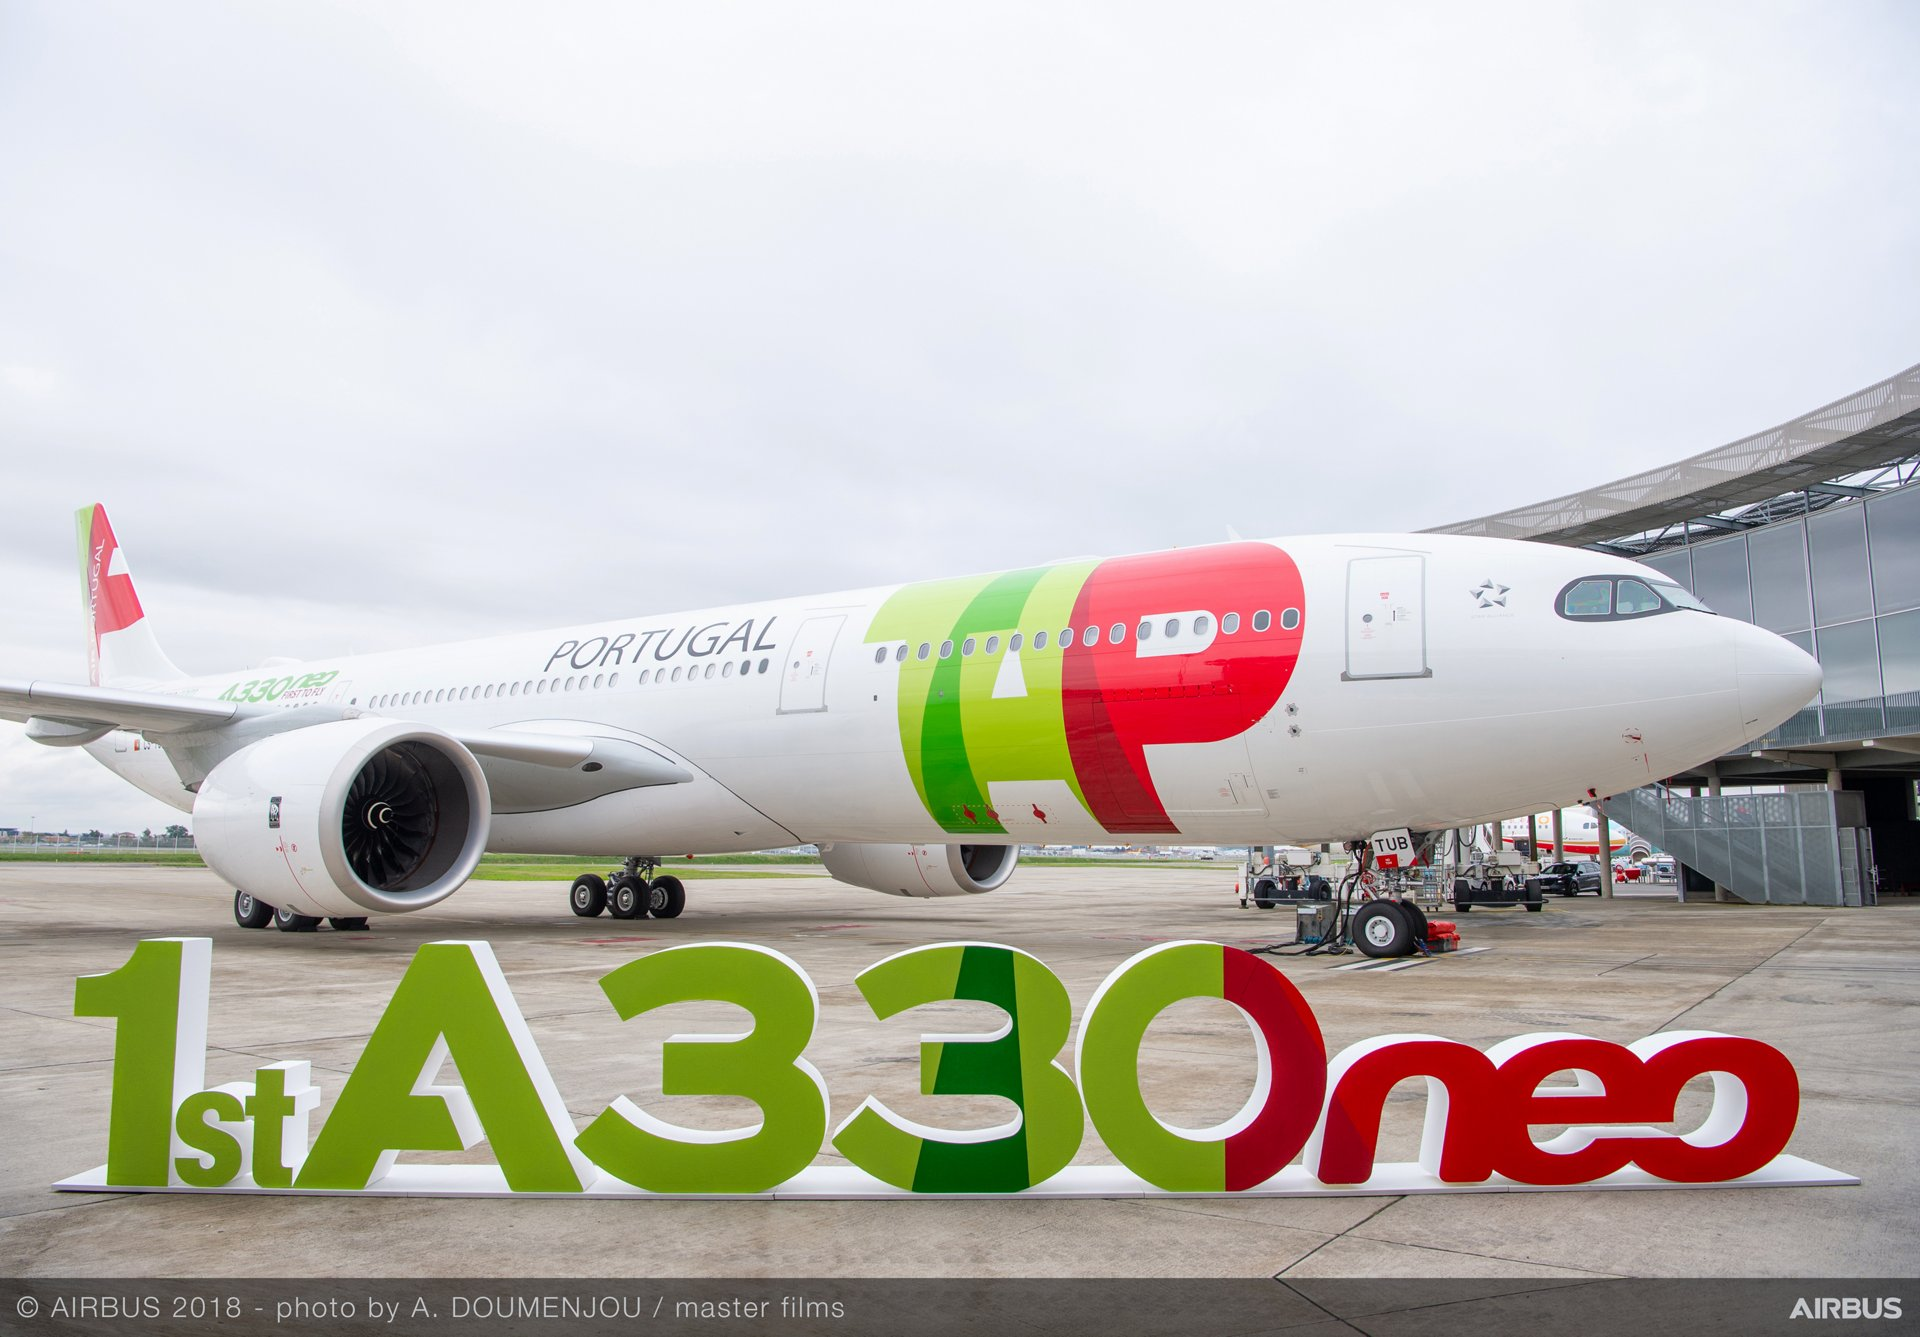 Airbus' three-decade relationship with A330neo launch customer TAP Air Portugal began in 1988 with delivery of an A310 jetliner